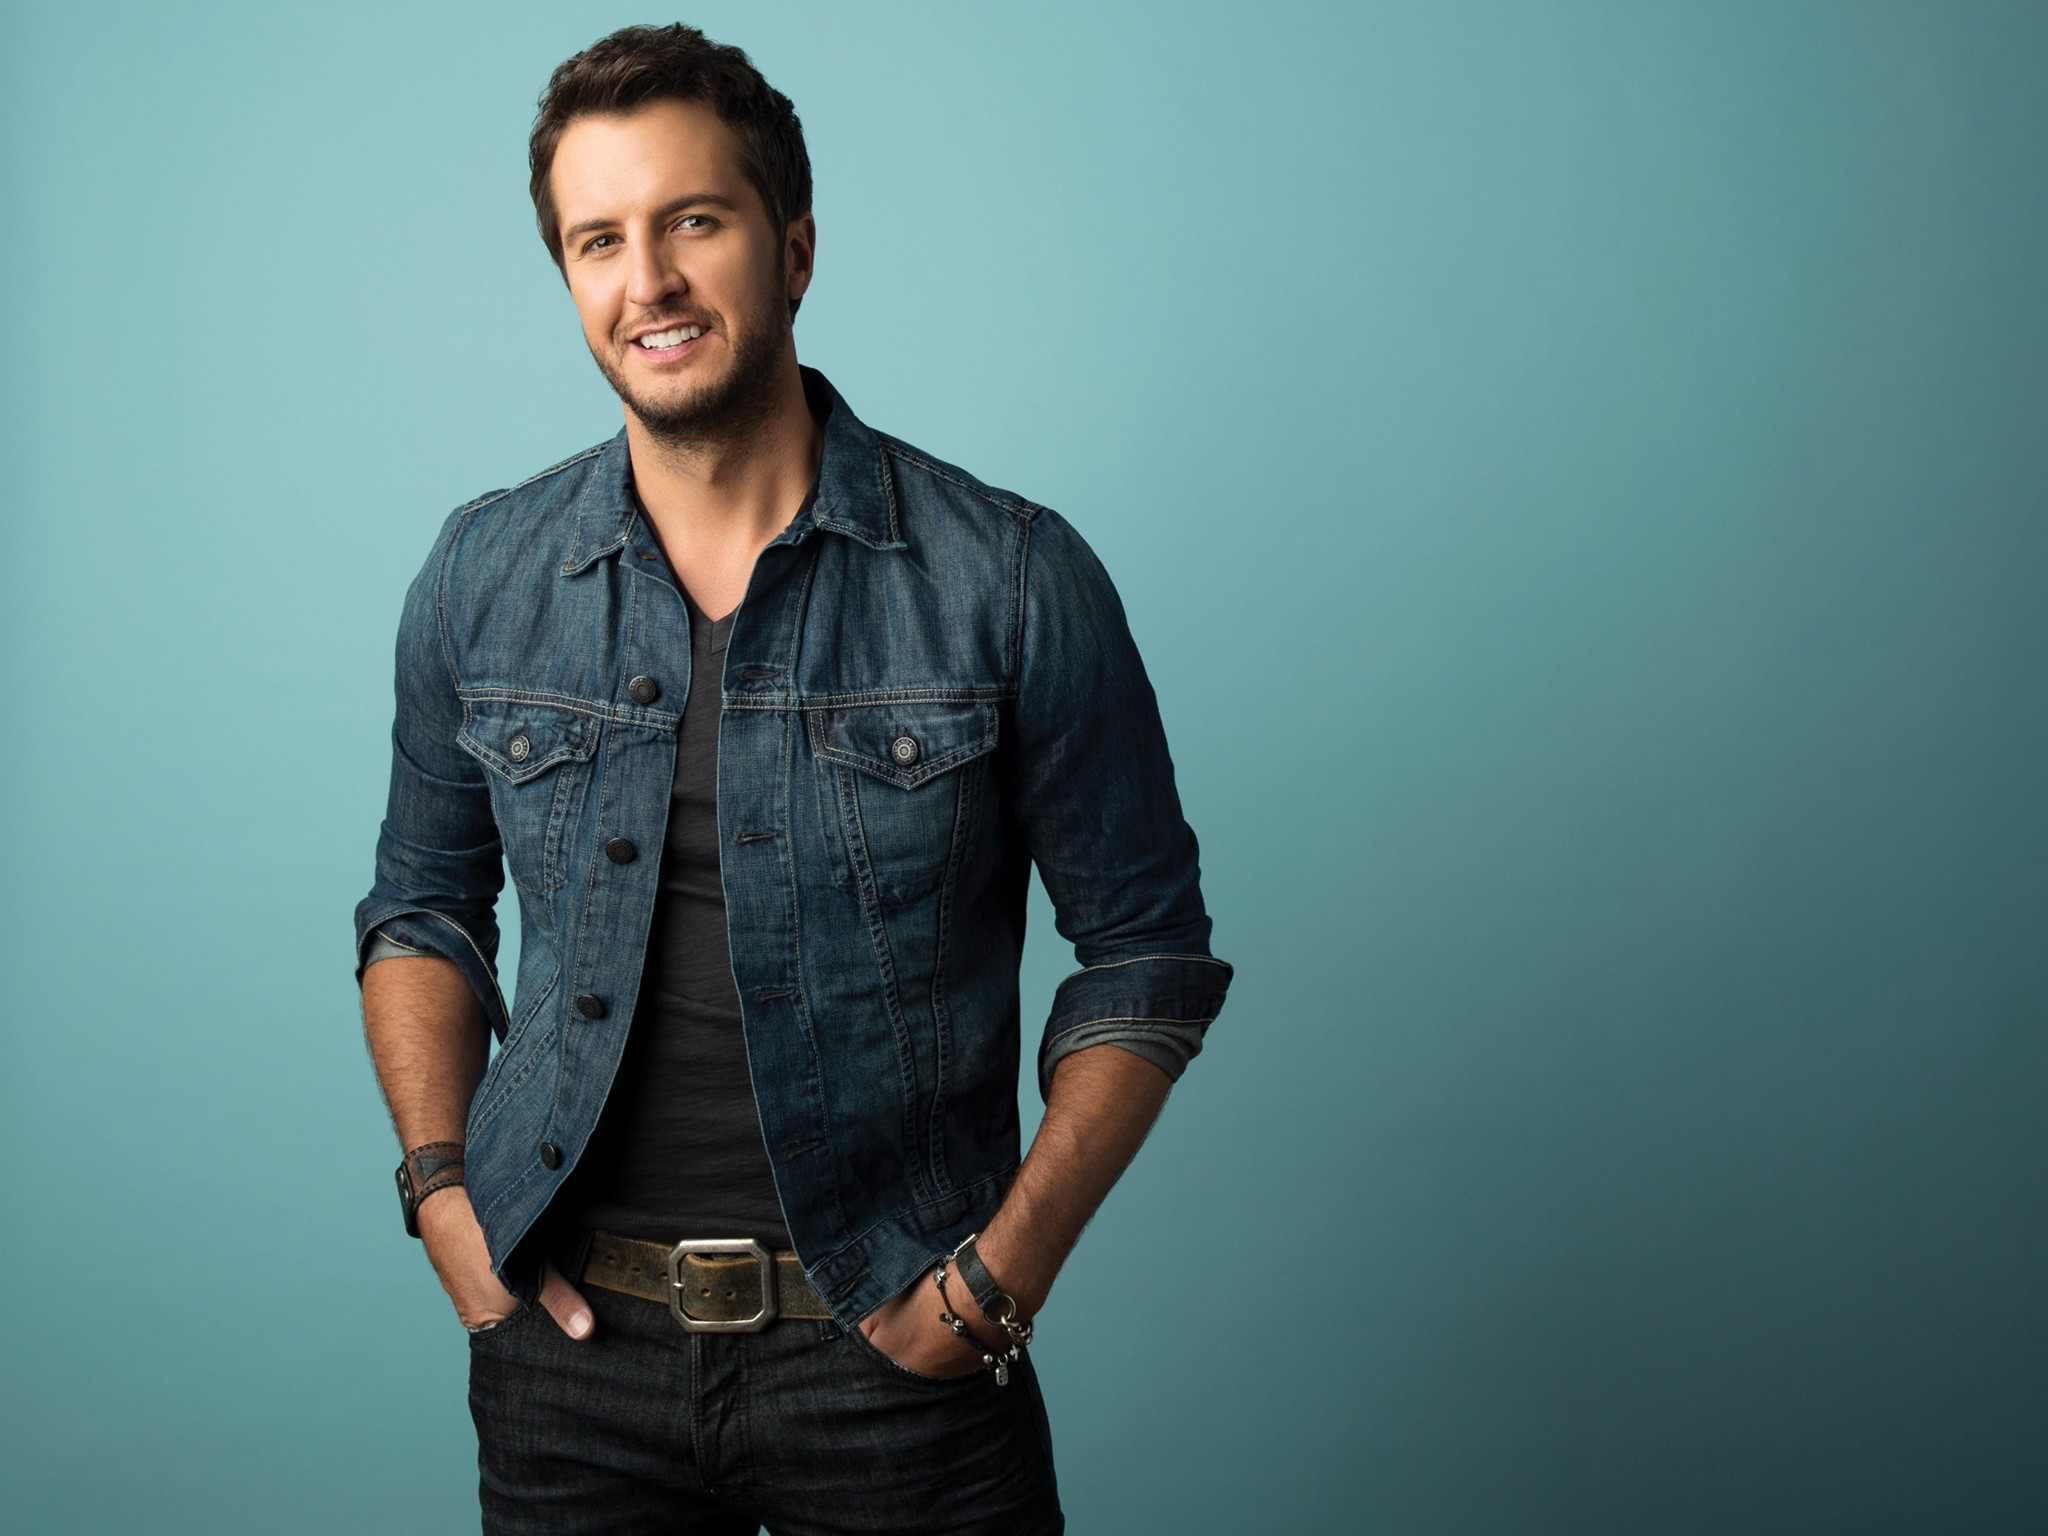 luke bryan wallpapers full hd pictures